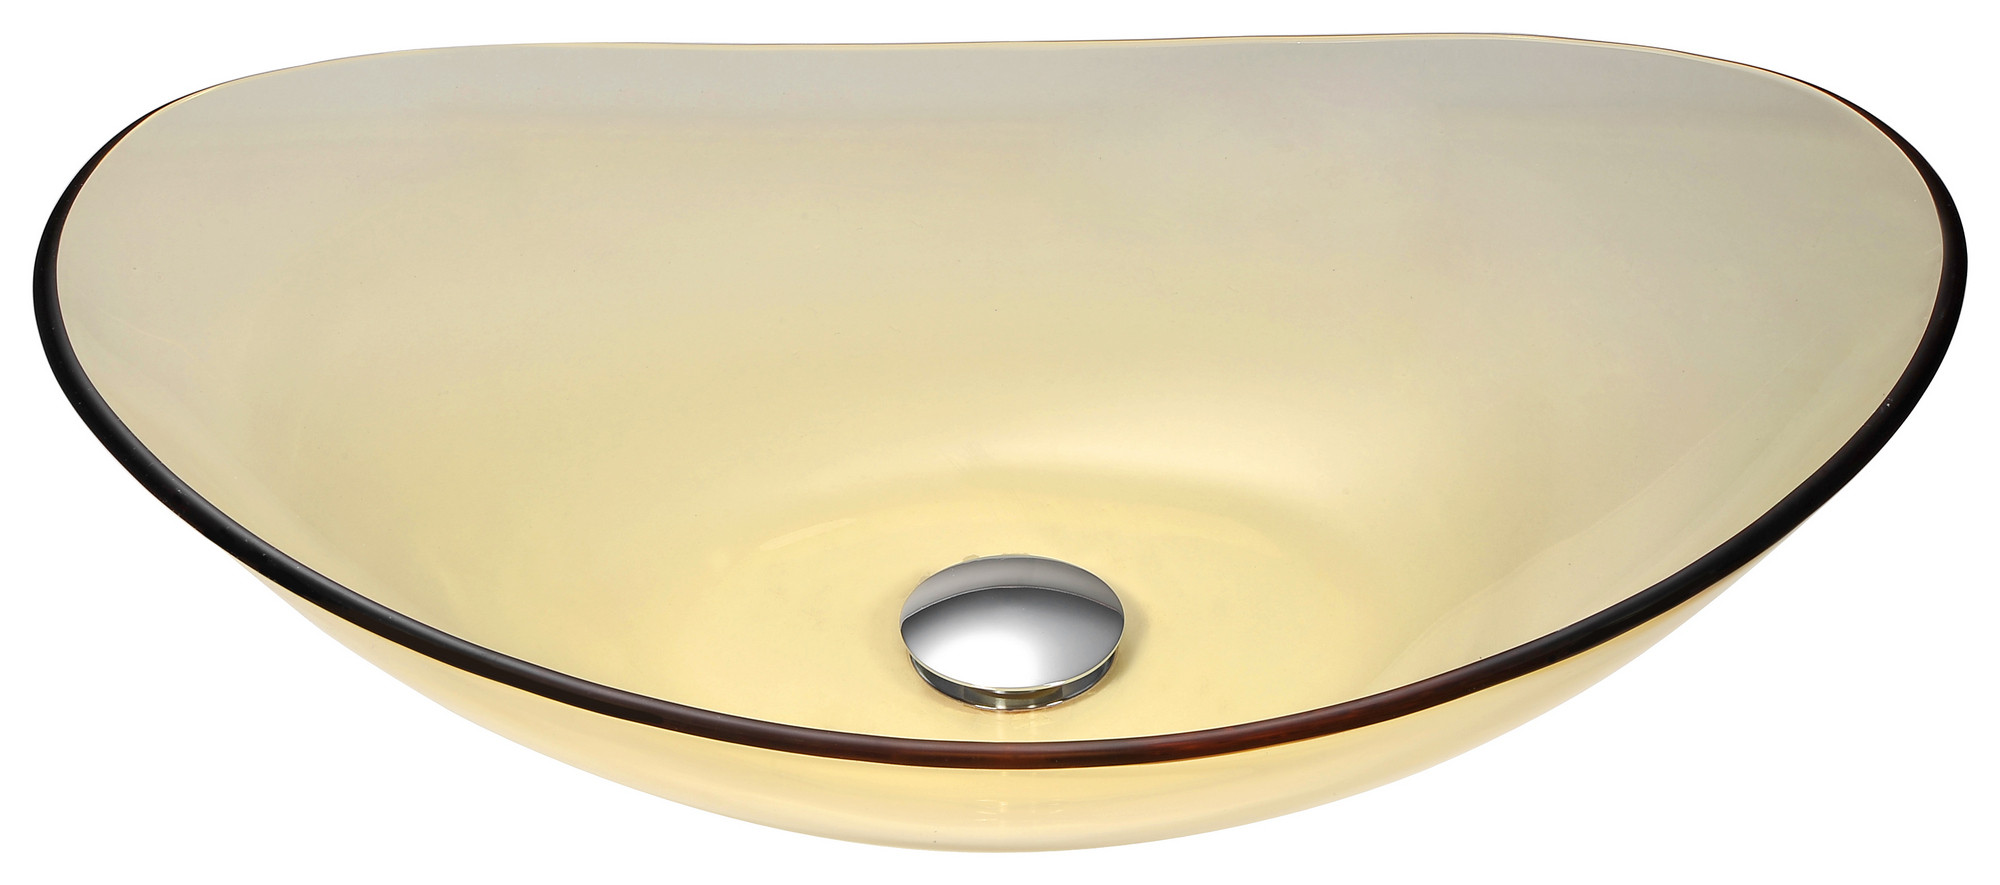 ANZZI LS-AZ052 Mesto Deco-Glass Vessel Sink In Lustrous Translucent Gold